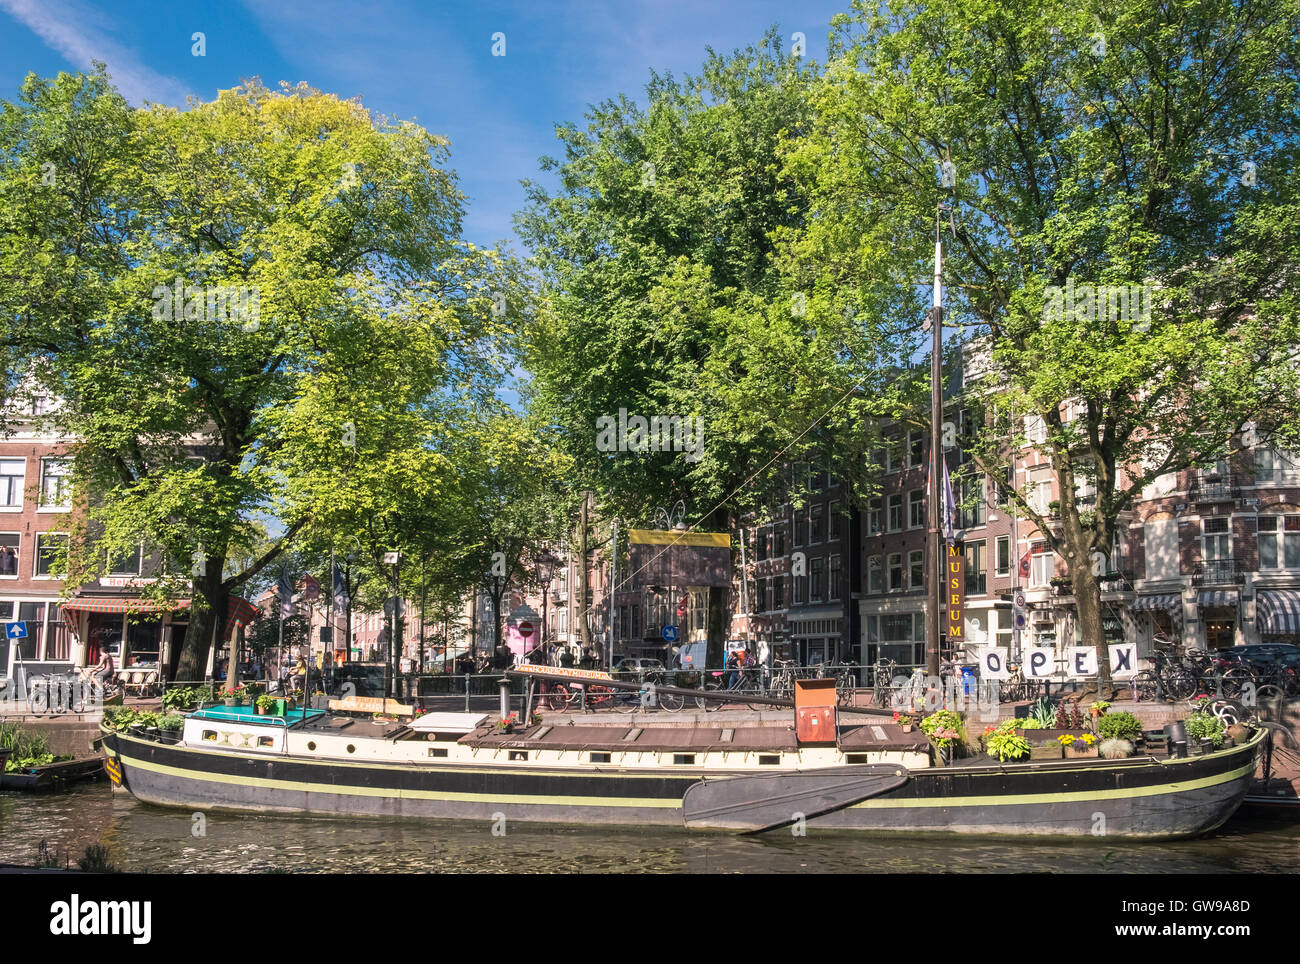 The Houseboat Museum, located on Prinsengracht canal, Jordaan district, Amsterdam, Netherlands - Stock Image